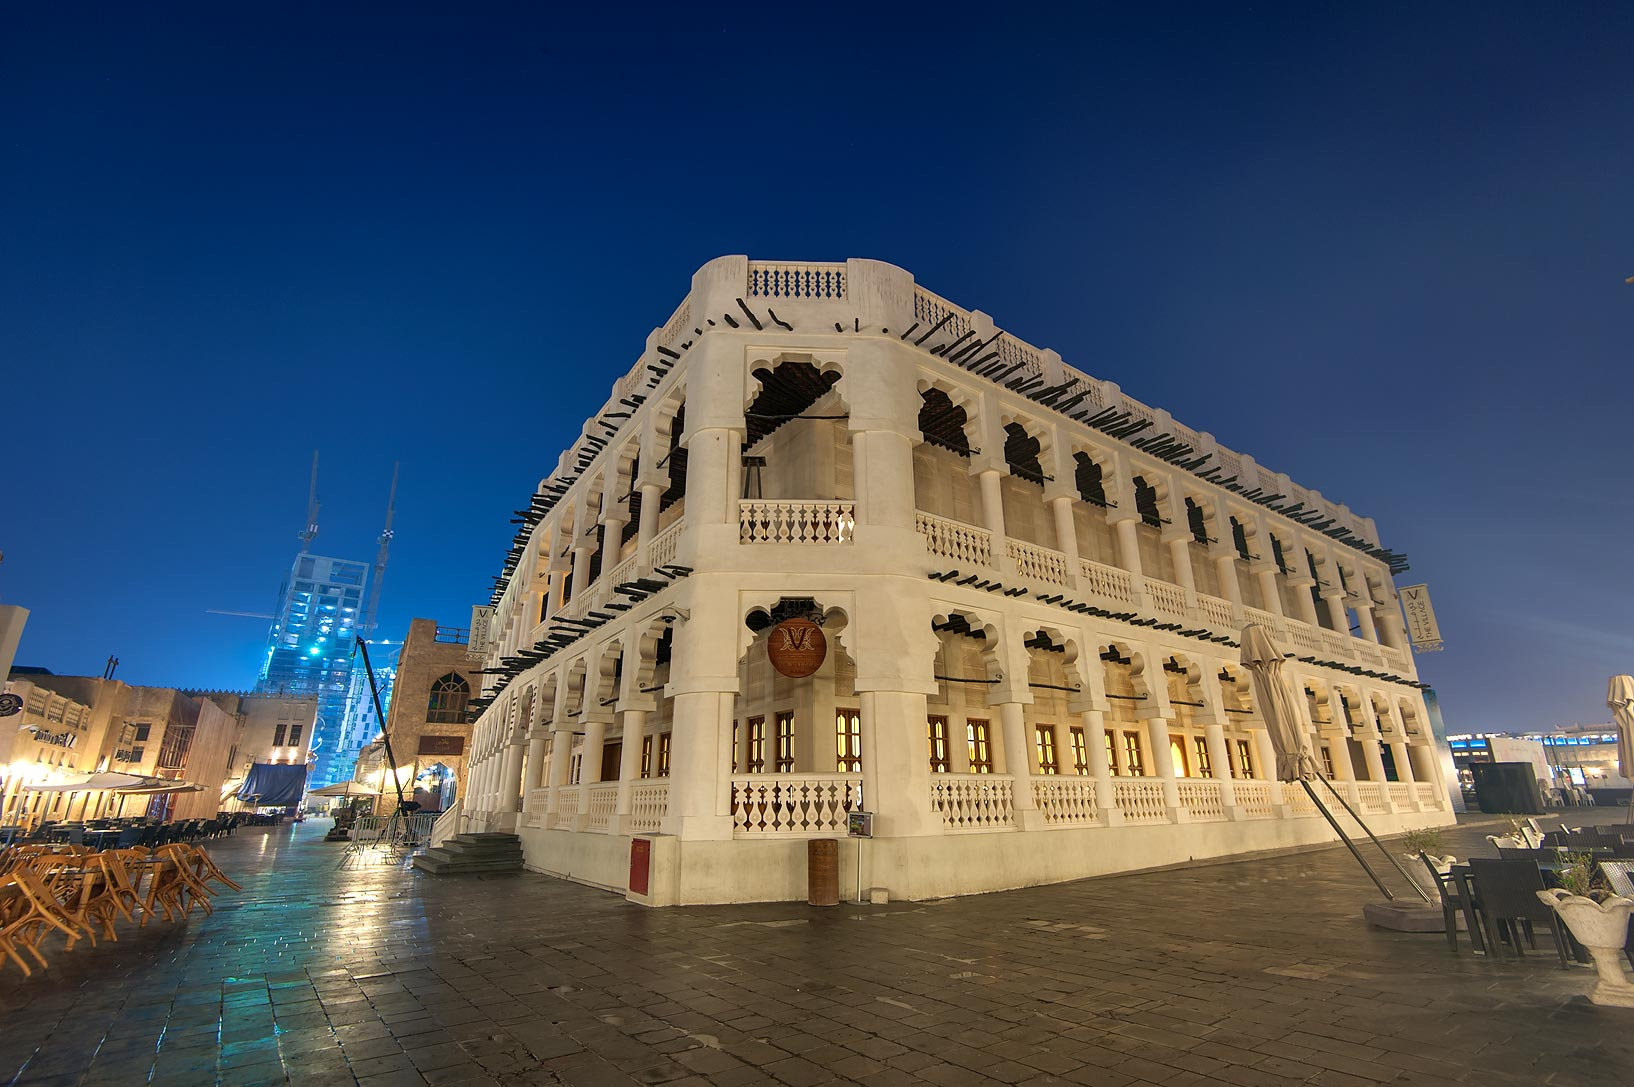 The Village Hotel in Souq Waqif (old market) at morning. Doha, Qatar